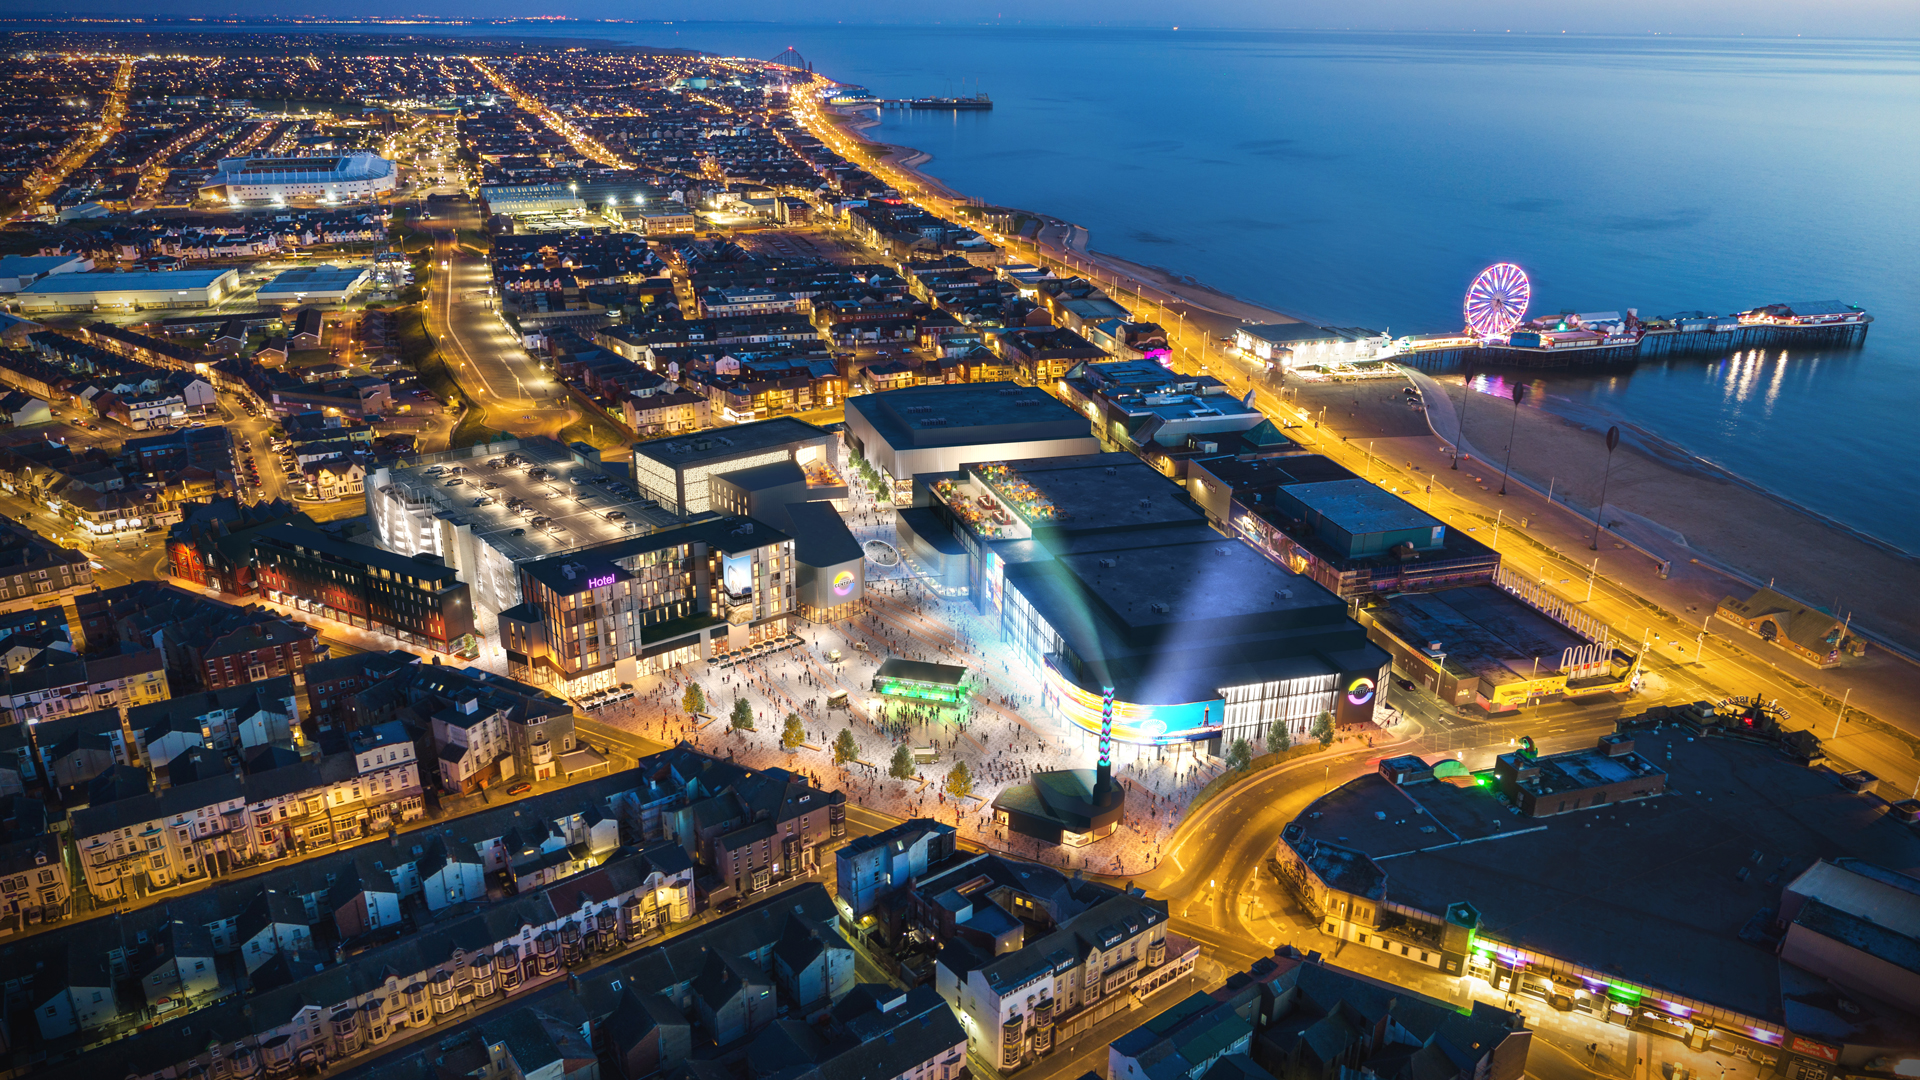 BlackpoolCentral_V05_Aerial_toSouth_Issue05.jpg